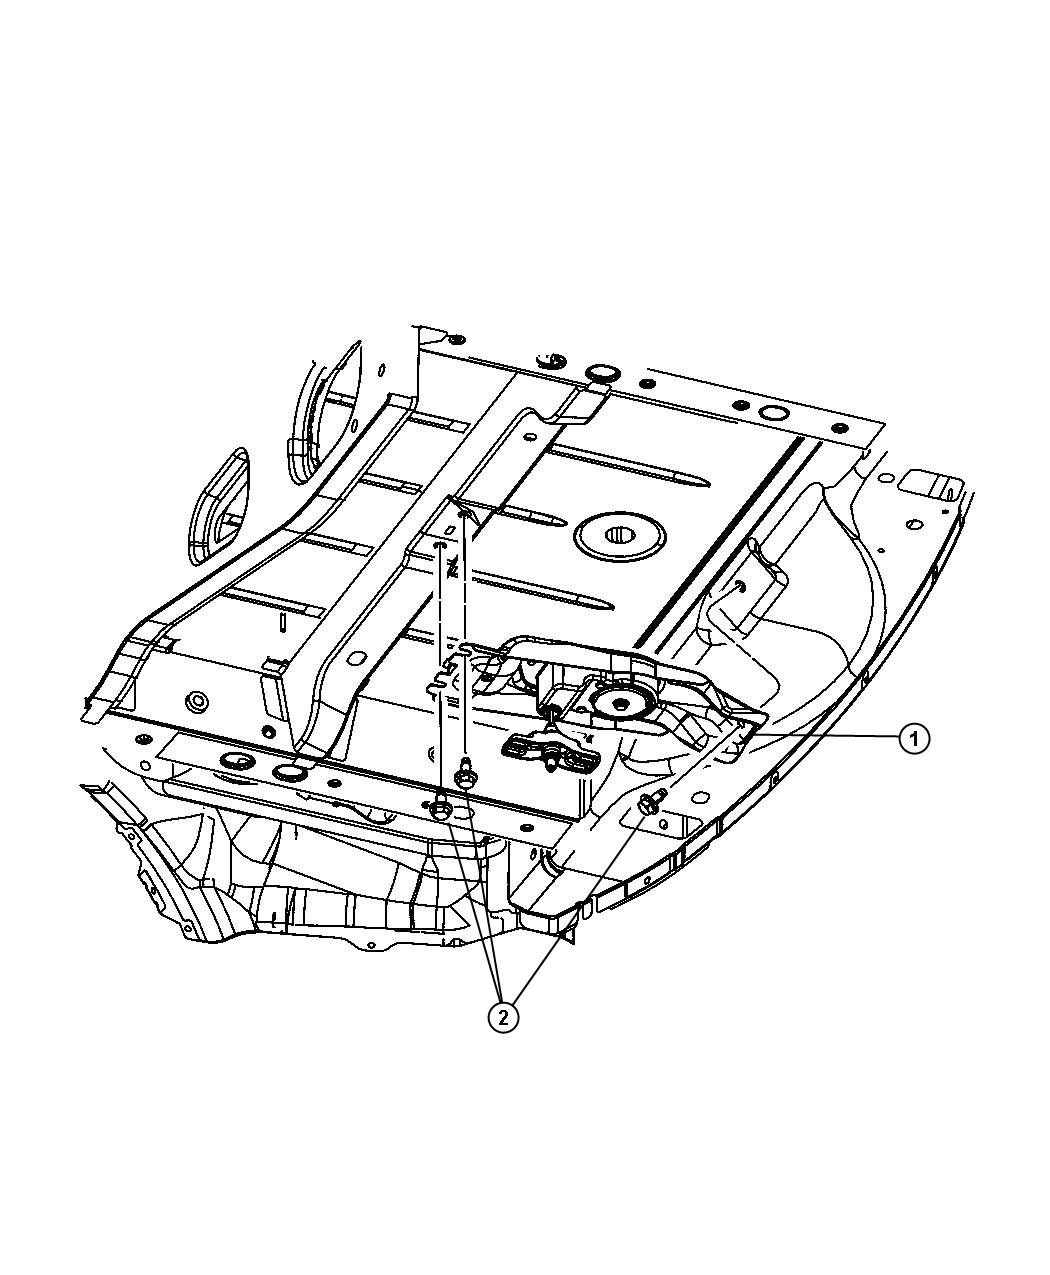 Dodge dart body parts diagram on 2000 bmw 323i vacuum hose diagram 349732727289668652